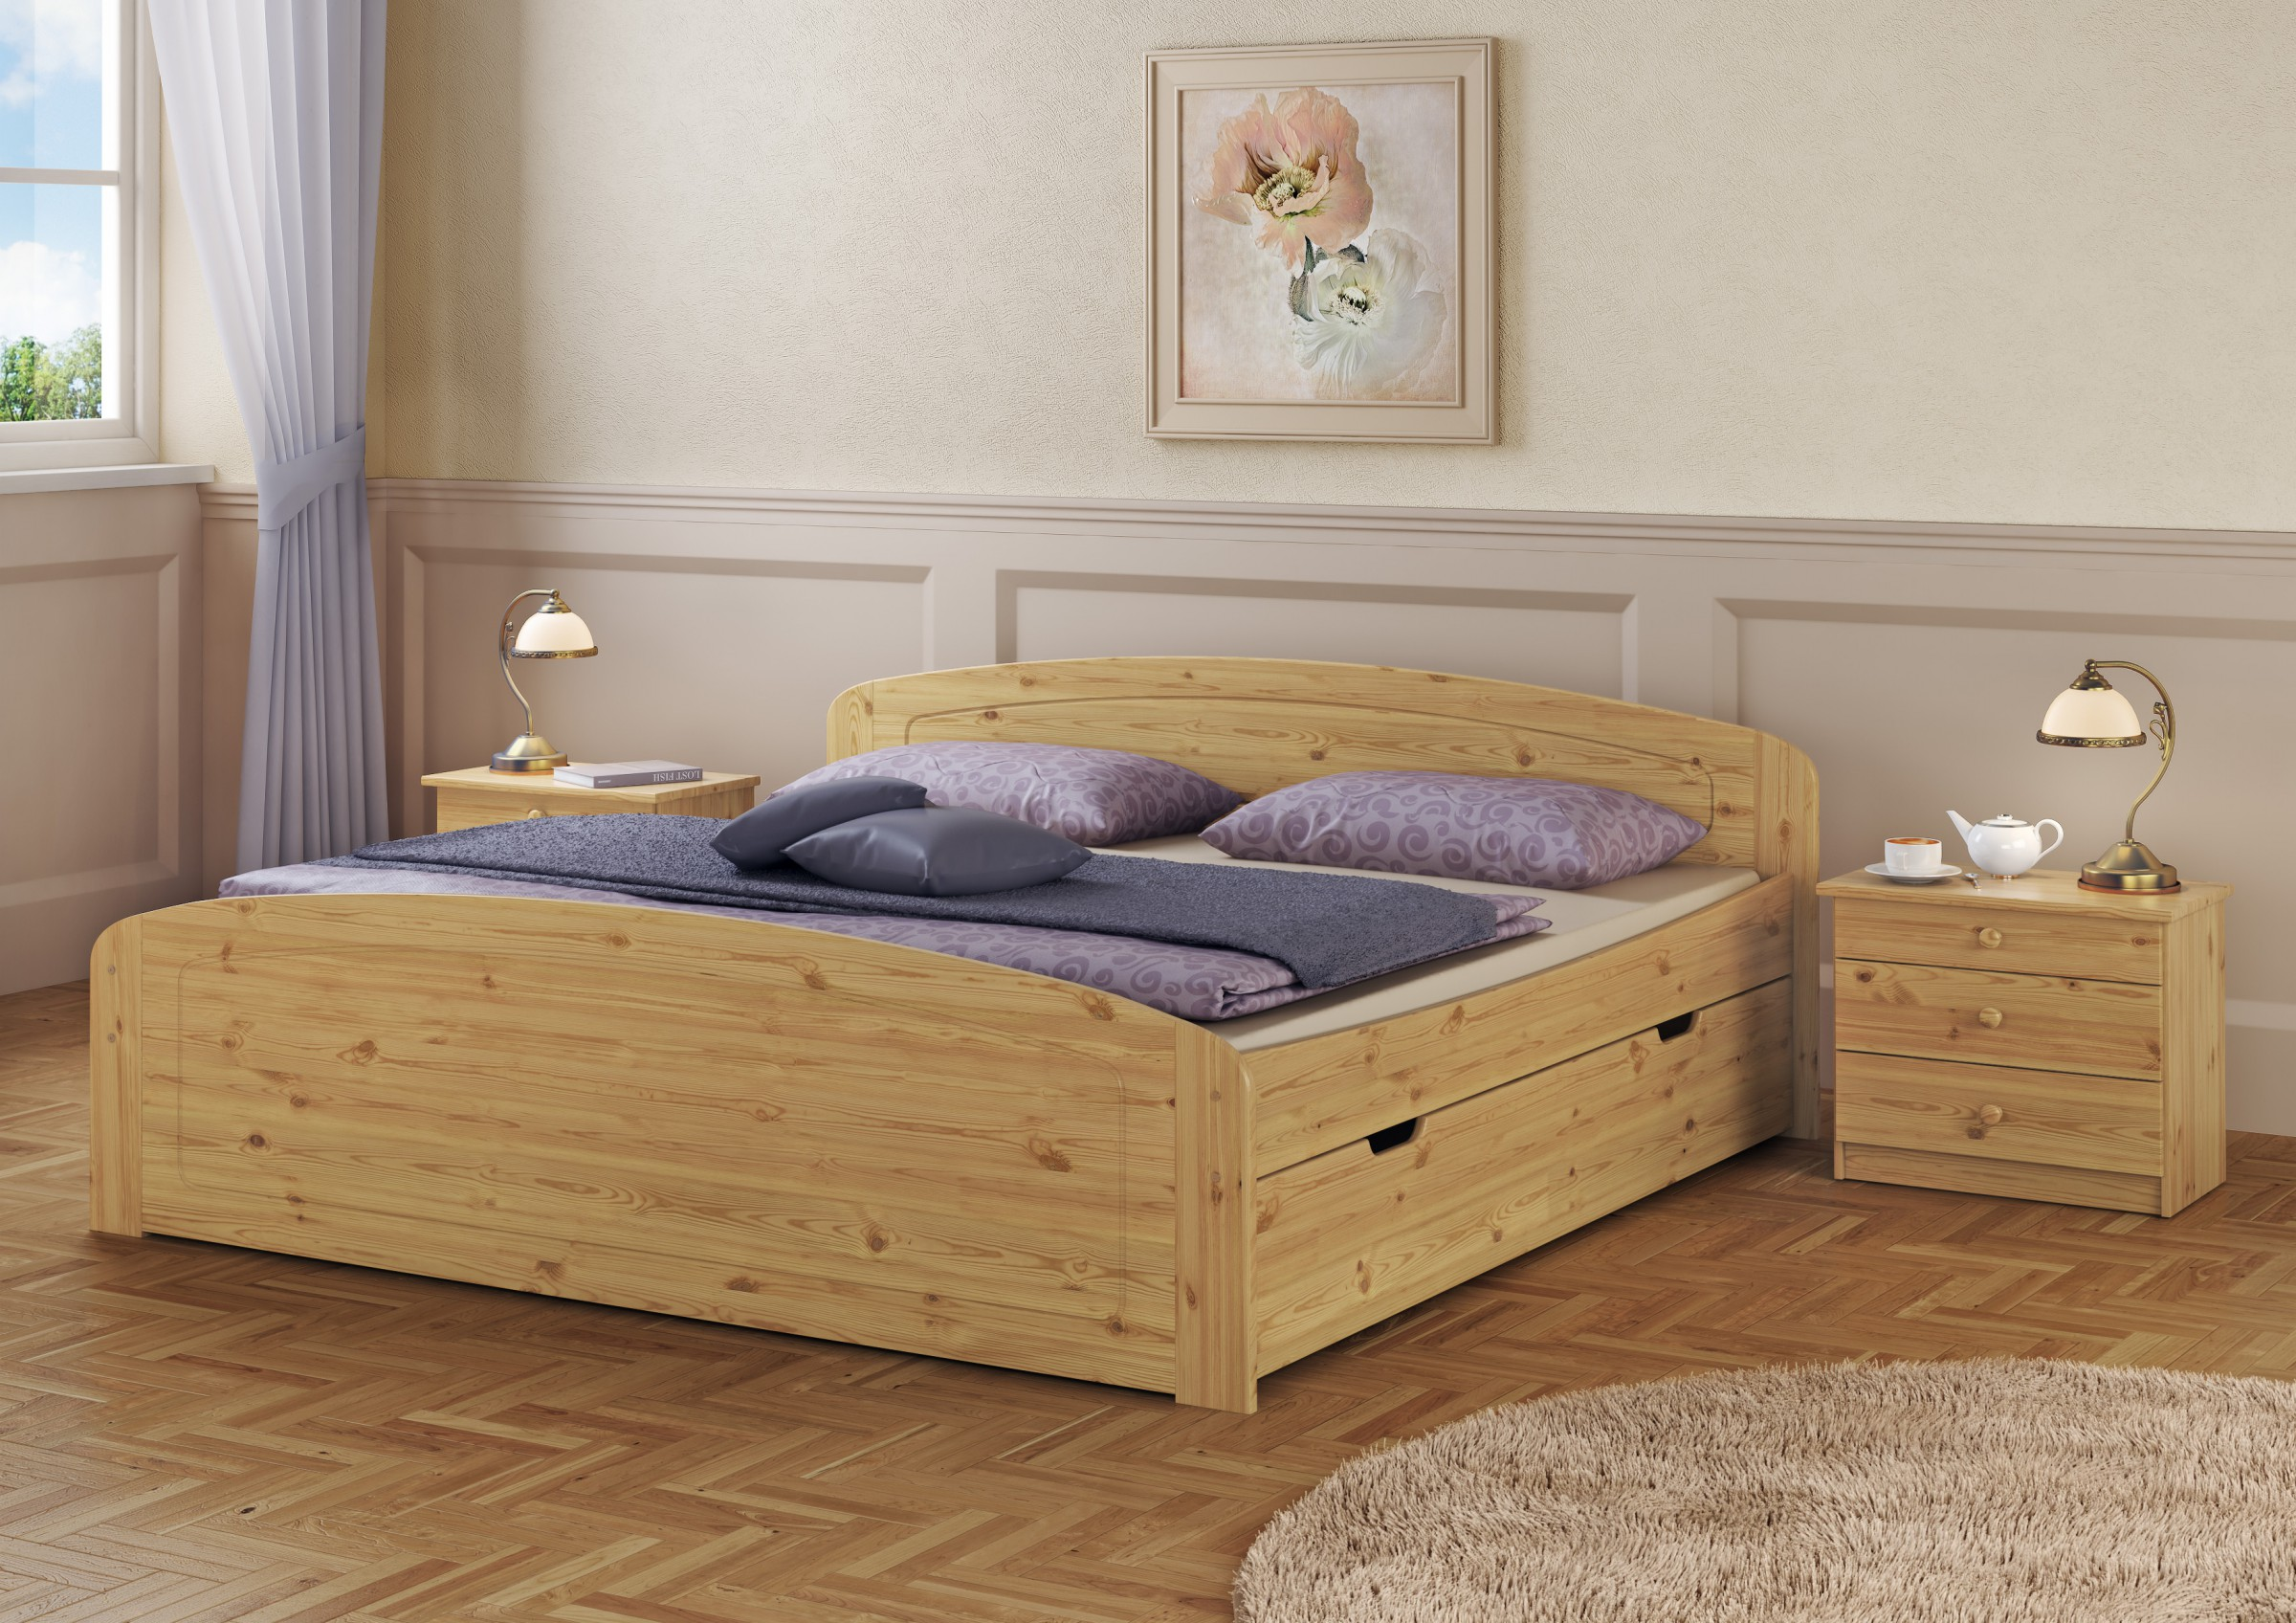 doppelbett 3 bettkasten rollrost 180x200 seniorenbett massivholz ebay. Black Bedroom Furniture Sets. Home Design Ideas